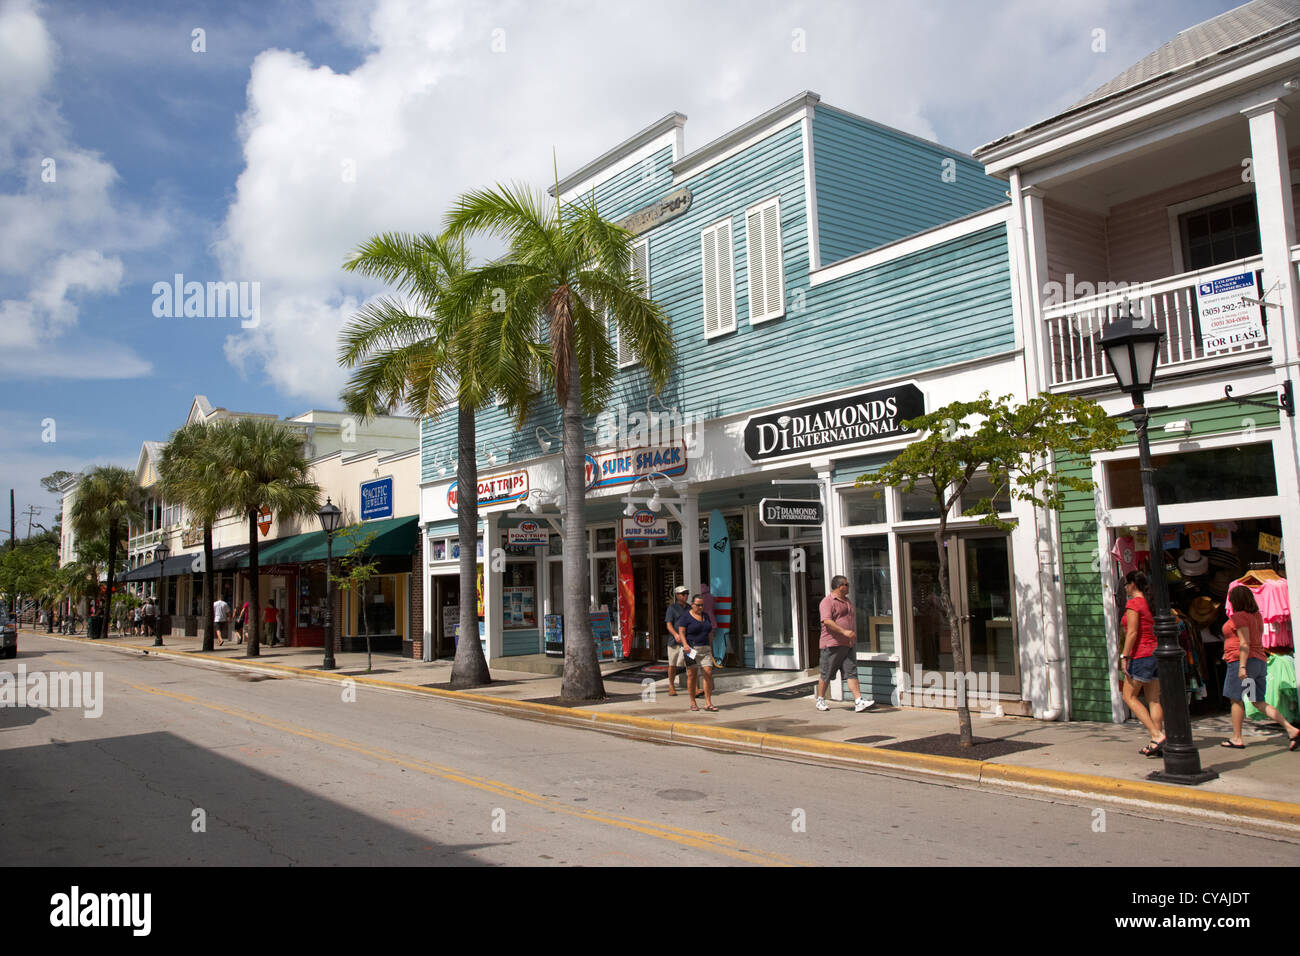 22810ec728 shops and stores on duval street old town key west florida usa - Stock Image